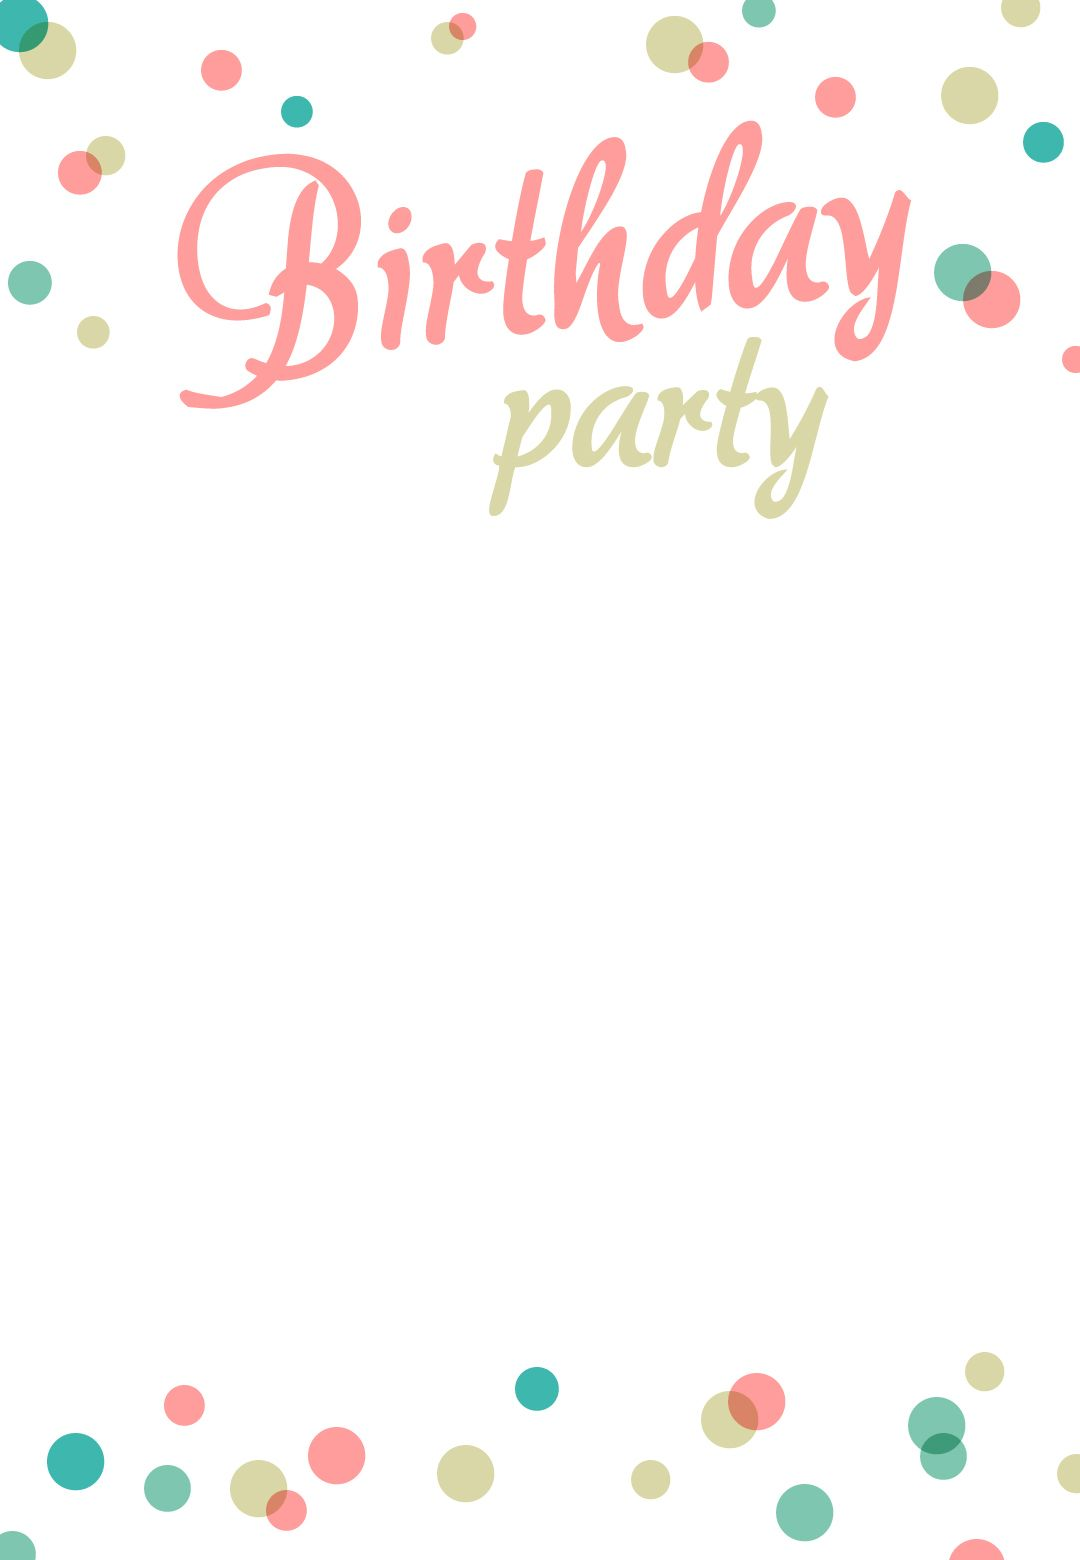 Birthday party invitation free printable addisons 1st birthday birthday party invitation free printable filmwisefo